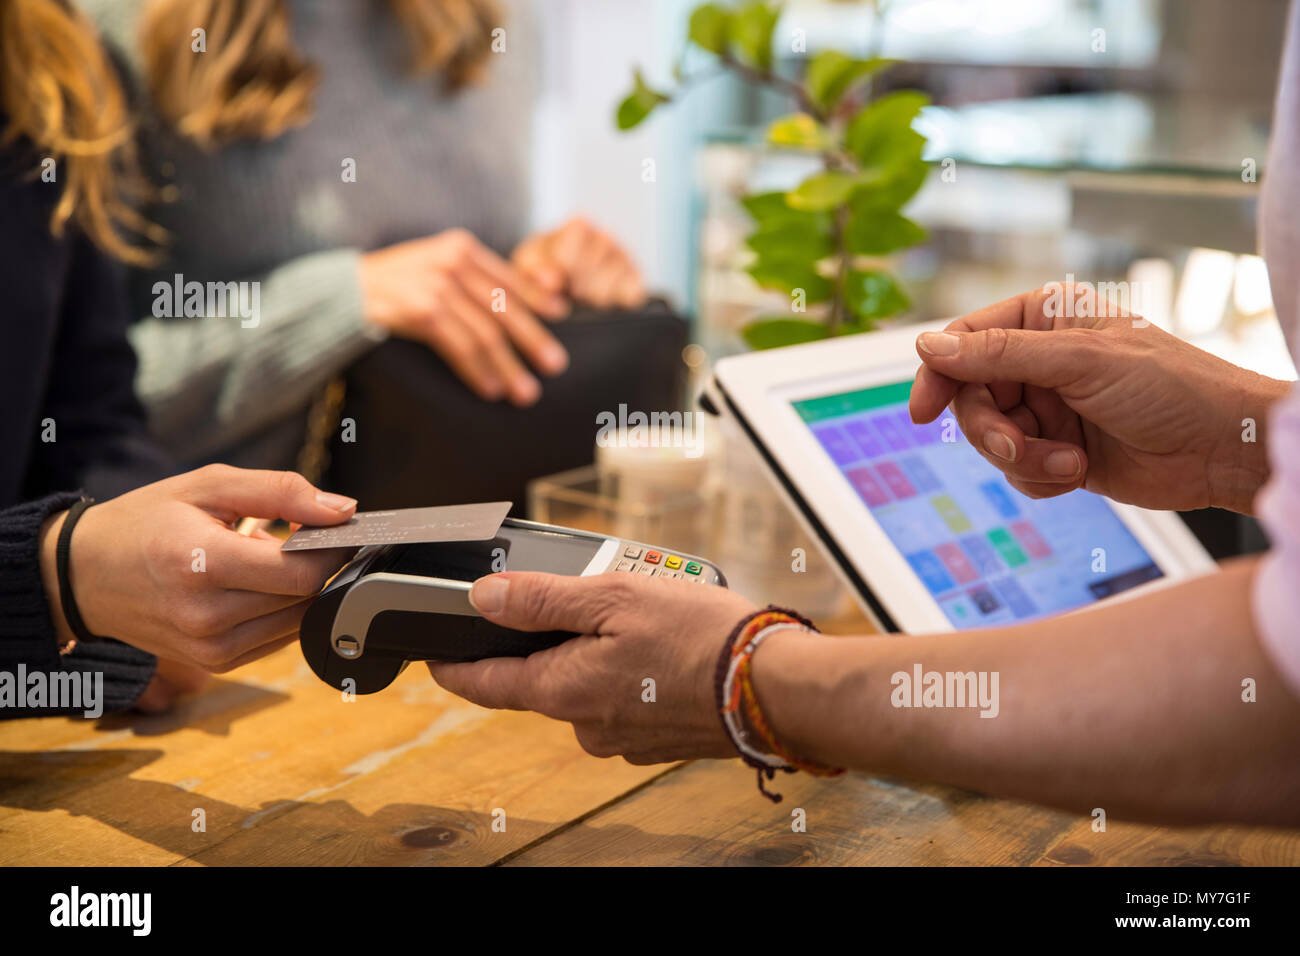 Female customer in shop, paying for goods using credit card on contactless payment machine, mid section, close-up Stock Photo